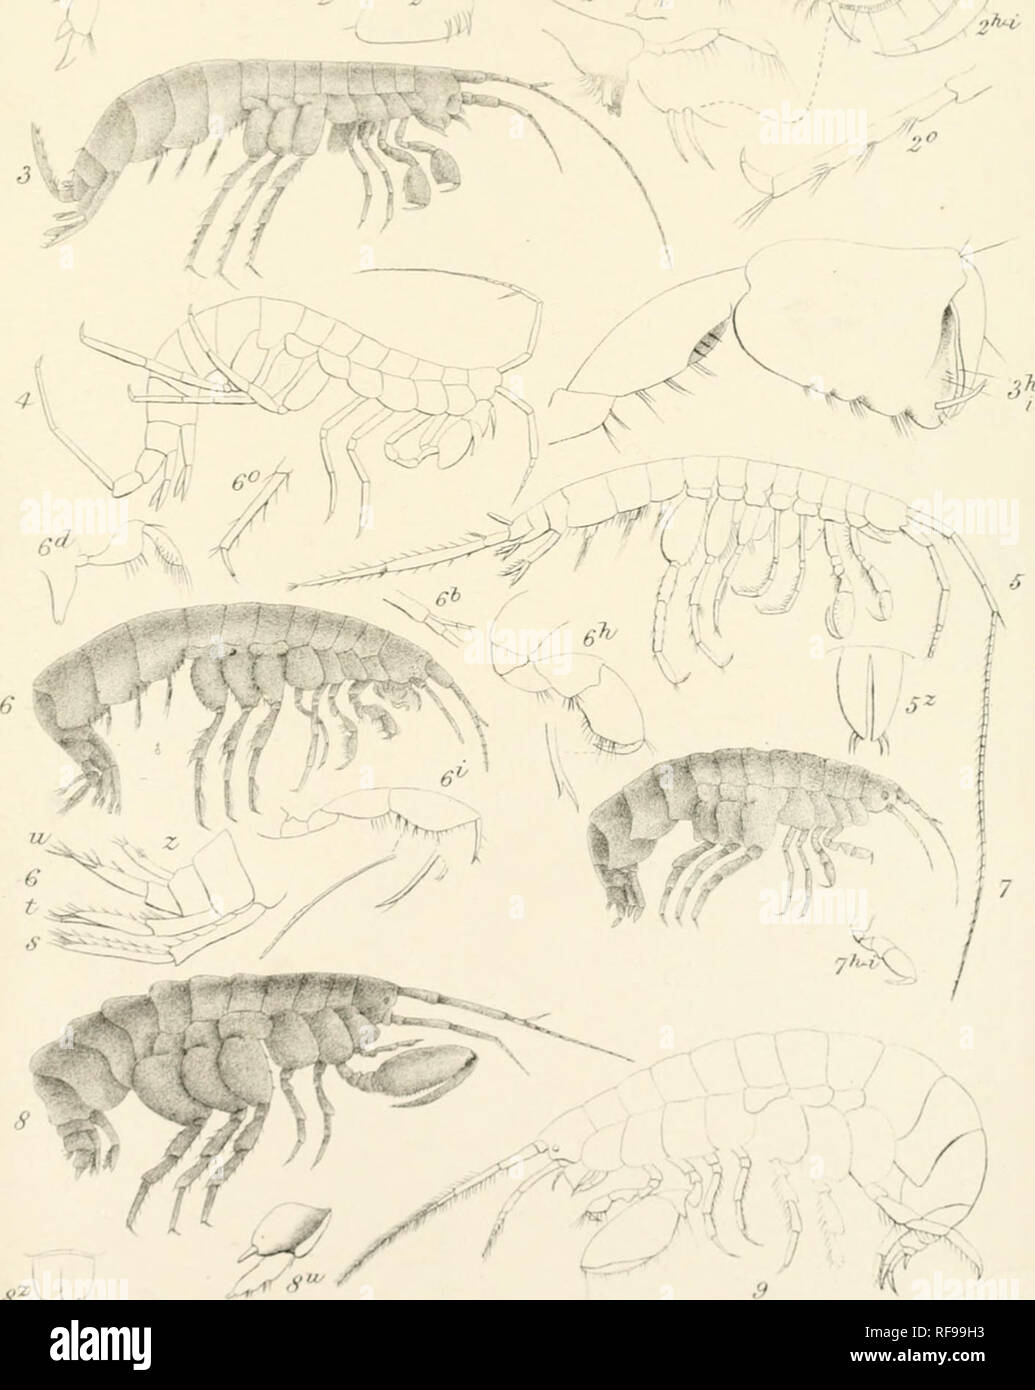 . Catalogue of the specimens of amphipodous Crustacea in the collection of the British Museum by C. Spence Bate. Amphipoda. I I  1'. UtaLCS£lltfa.XLB l.Niphar^us sargtus. 2.N.fontanus 3.N.kDchiaaus 4.N.puteanus. S.Eriqpis eJongata.. G.CrangCfnyx Sutterraneus. 7 C.Erraanii. y.Gamraai-allii.hrc/icaiulata. 9. CrBnisi'lieusis.. Please note that these images are extracted from scanned page images that may have been digitally enhanced for readability - coloration and appearance of these illustrations may not perfectly resemble the original work.. British Museum (Natural History). Dept. of Zoology;  Stock Photo